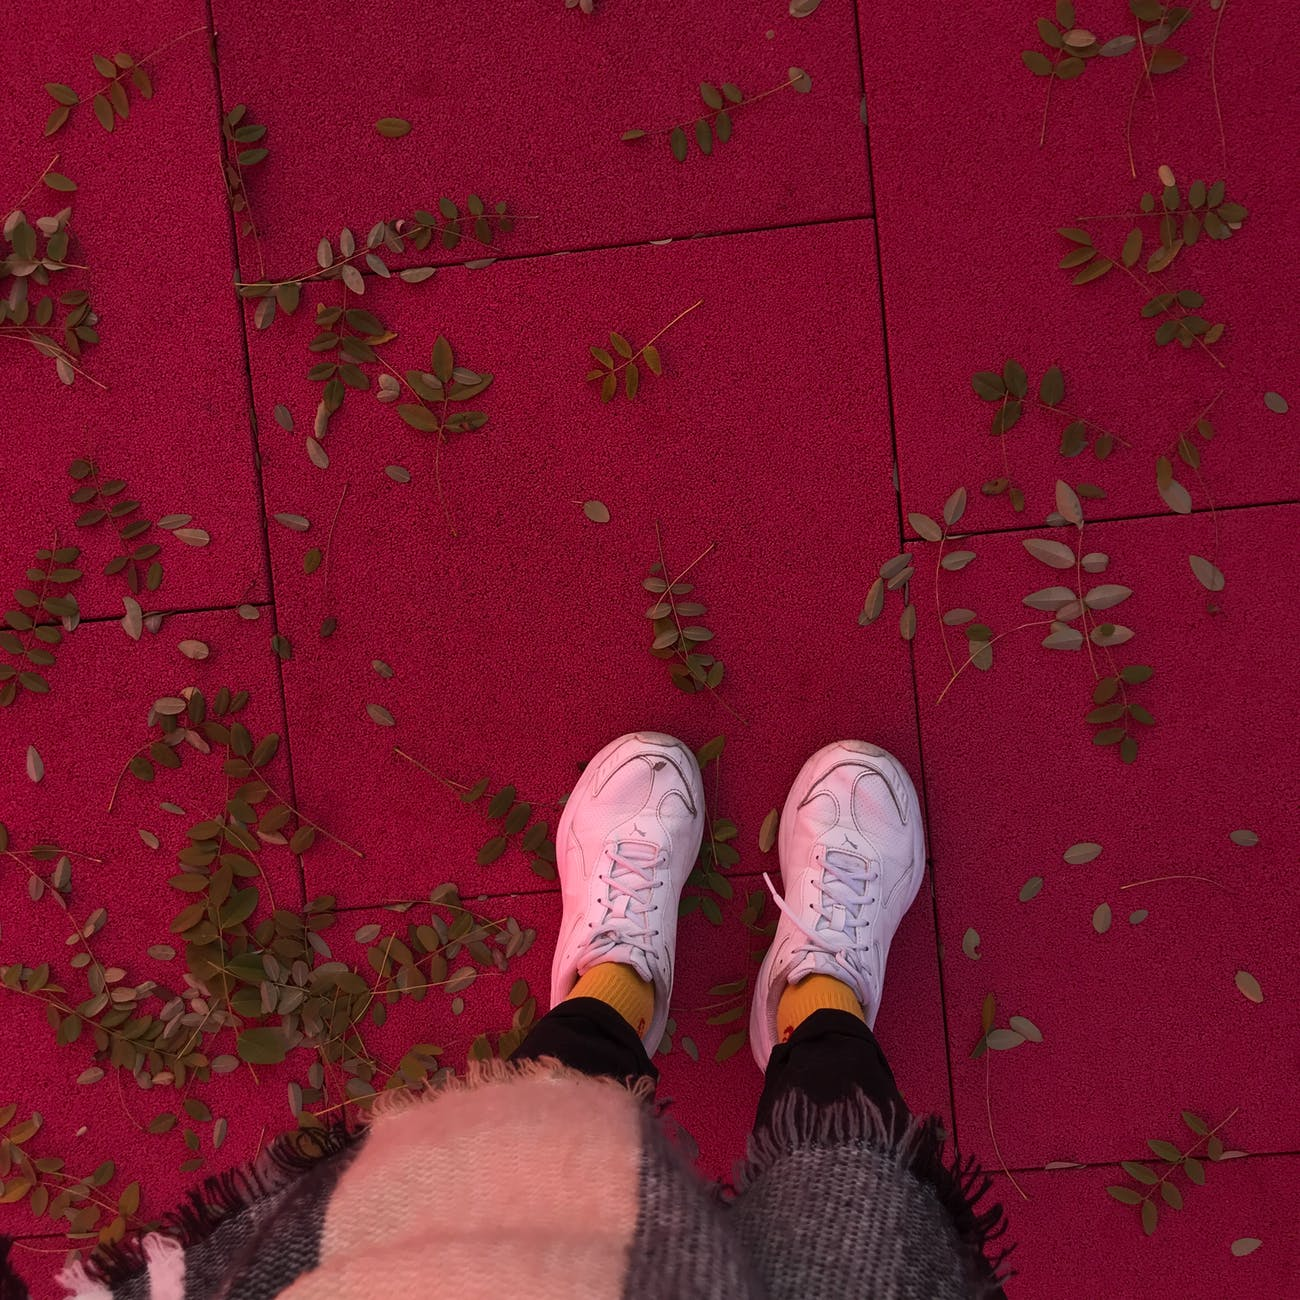 woman standing on red floor with fallen branches